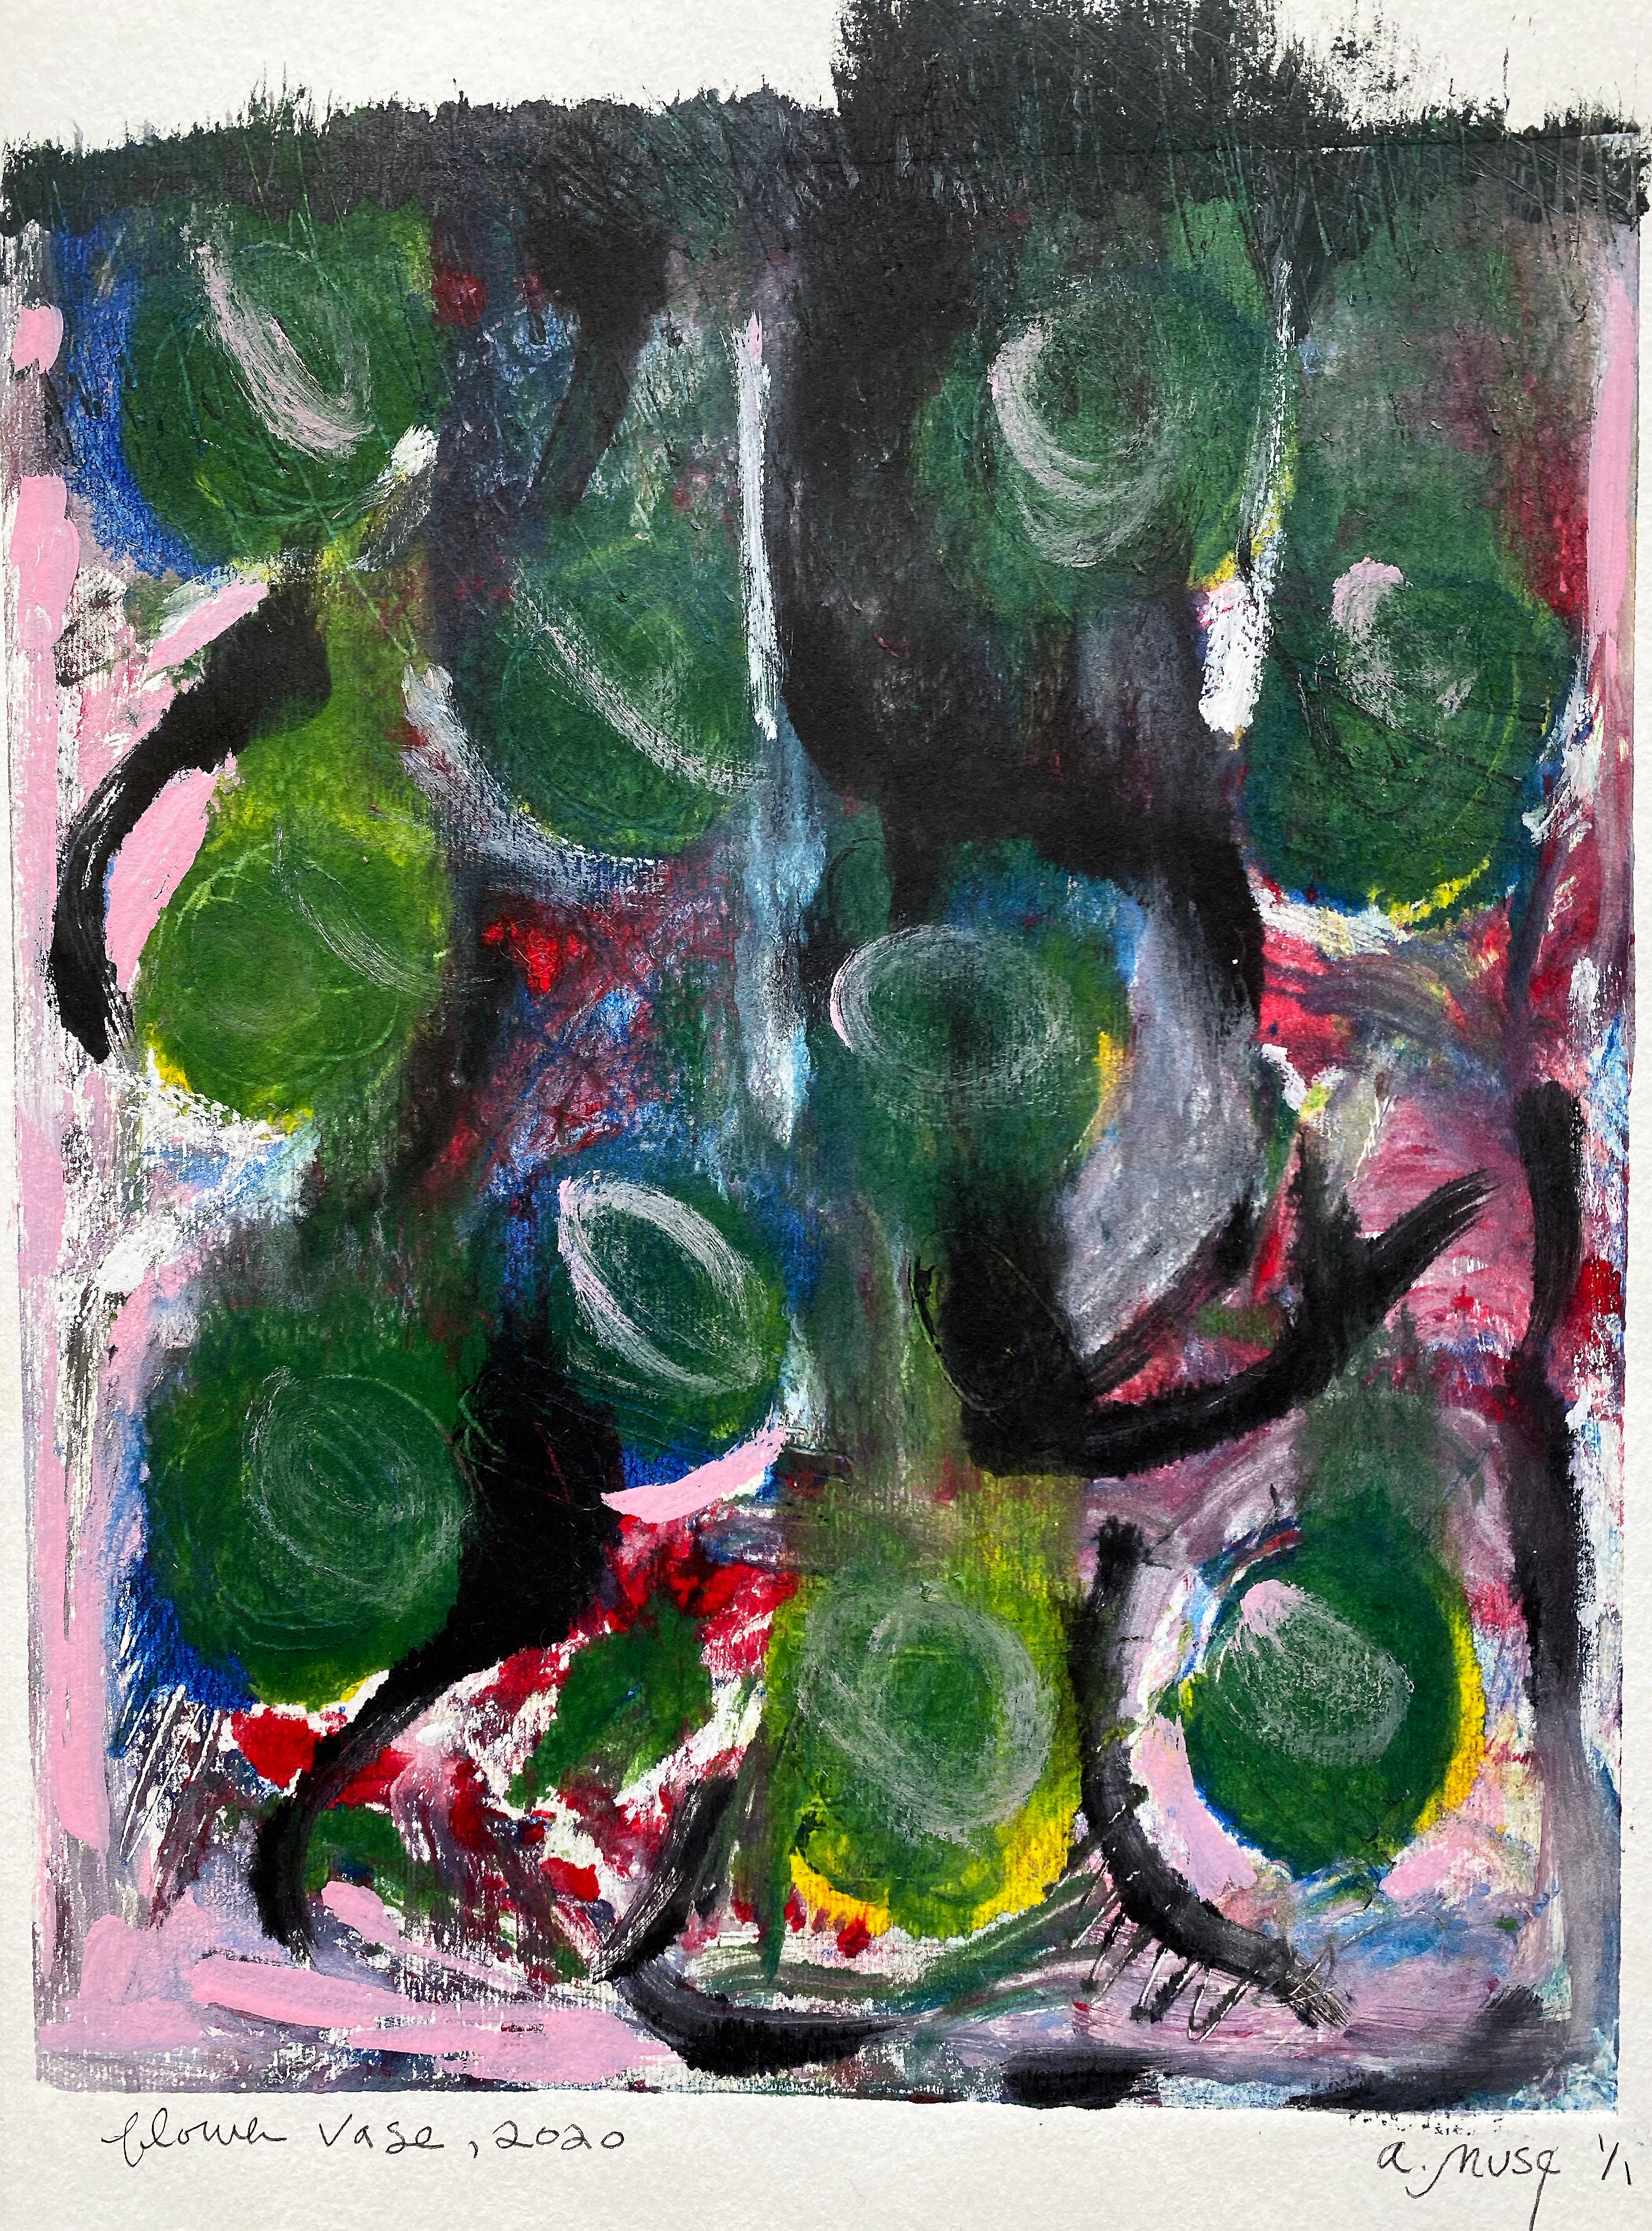 Flower Vase, Monotype, Contemporary Abstract Color Work on Paper, Edition of 1